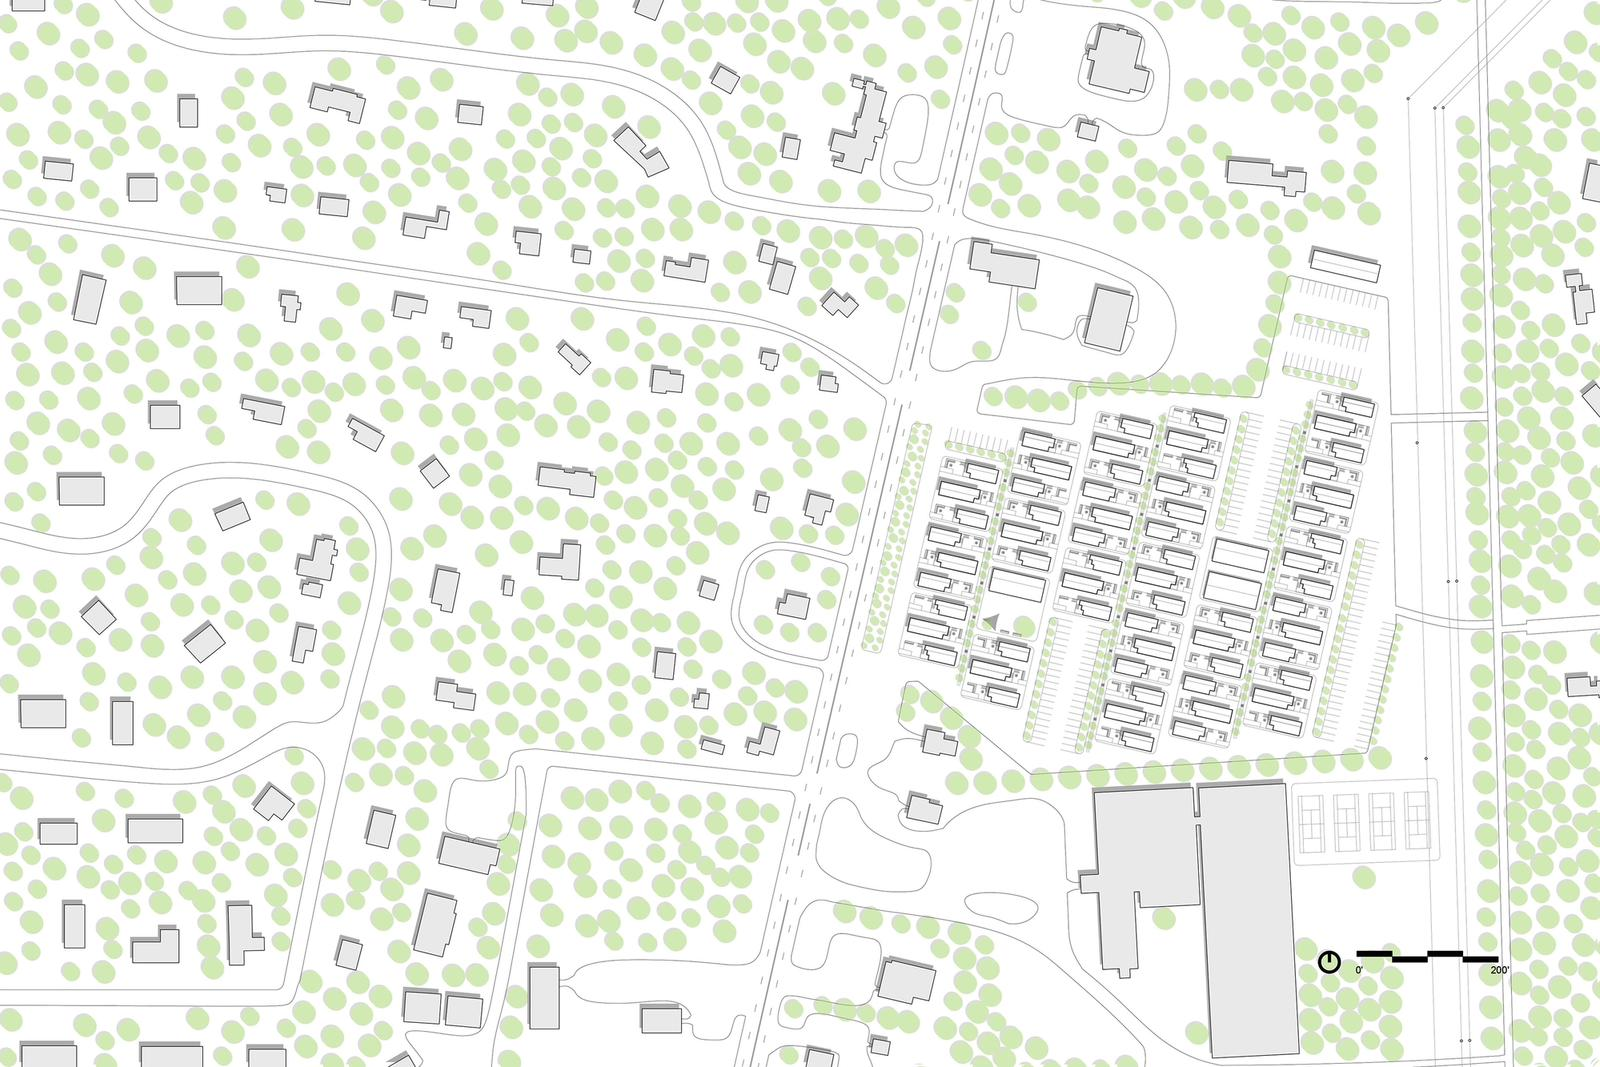 Outer Mix  Investigating mixed-use development as a means to fostering a healthy, year-round community on the Outer Cape - Site Plan